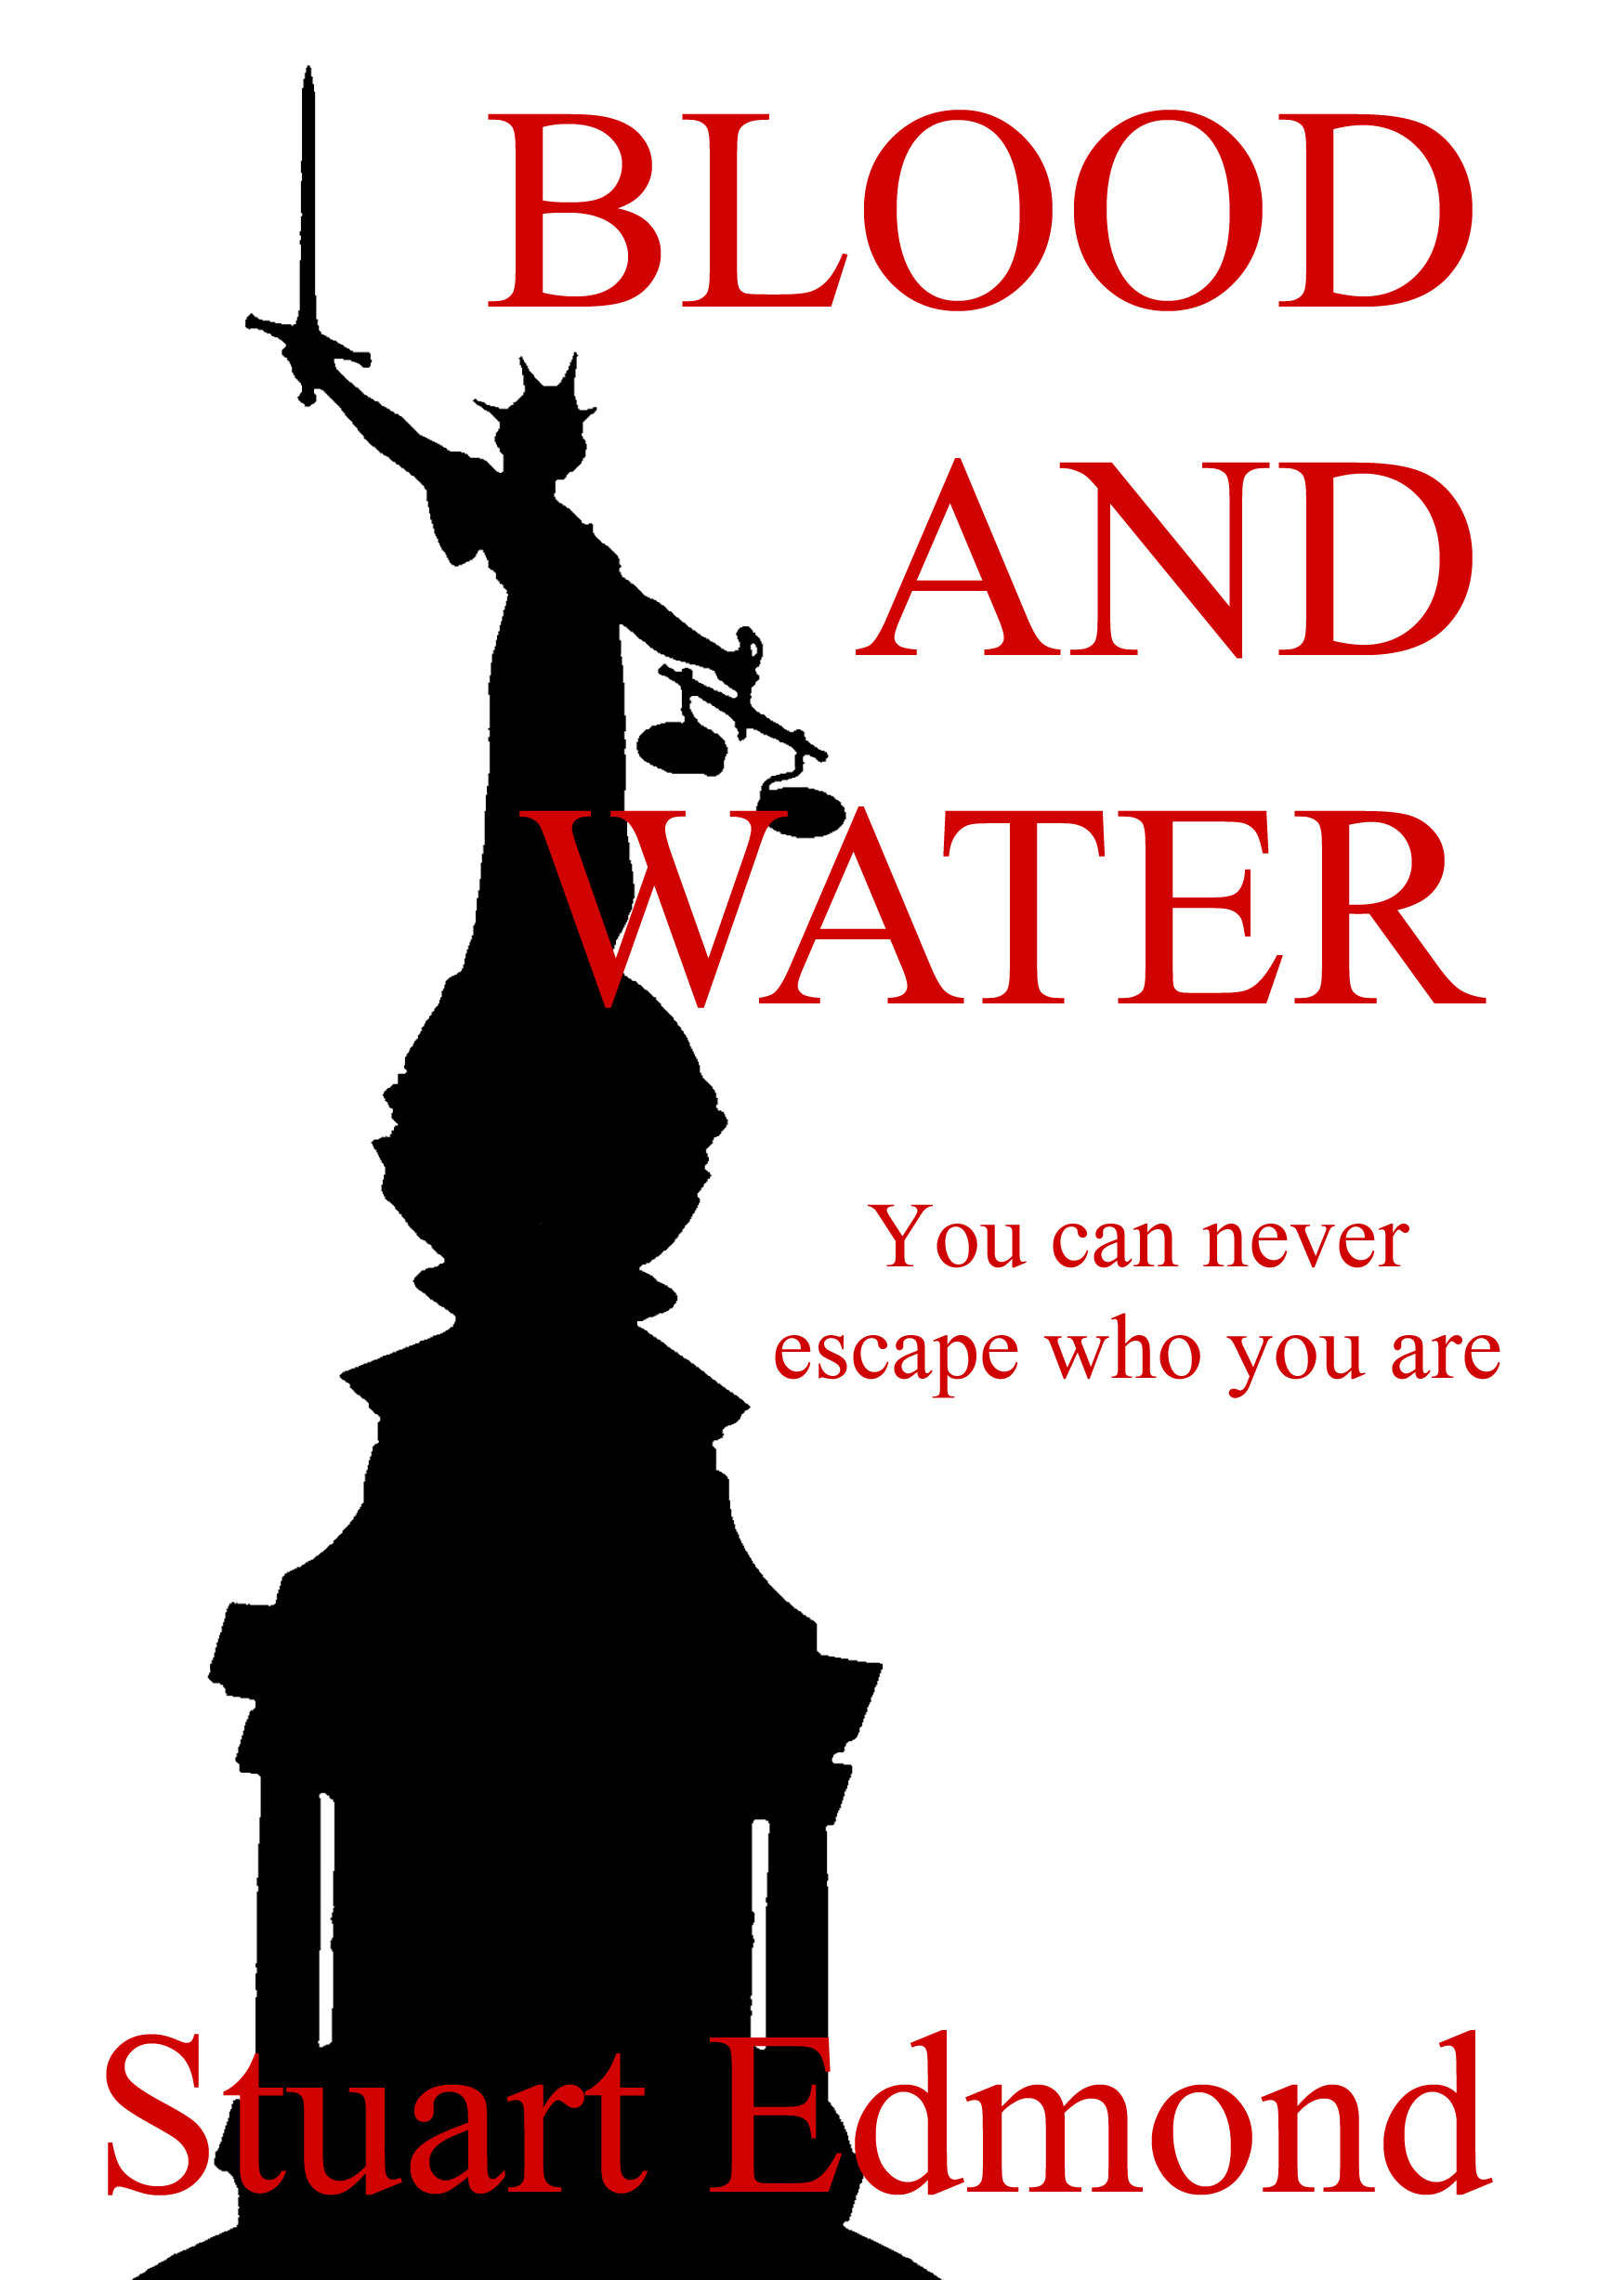 Blood And Water By: Stuart Edmond